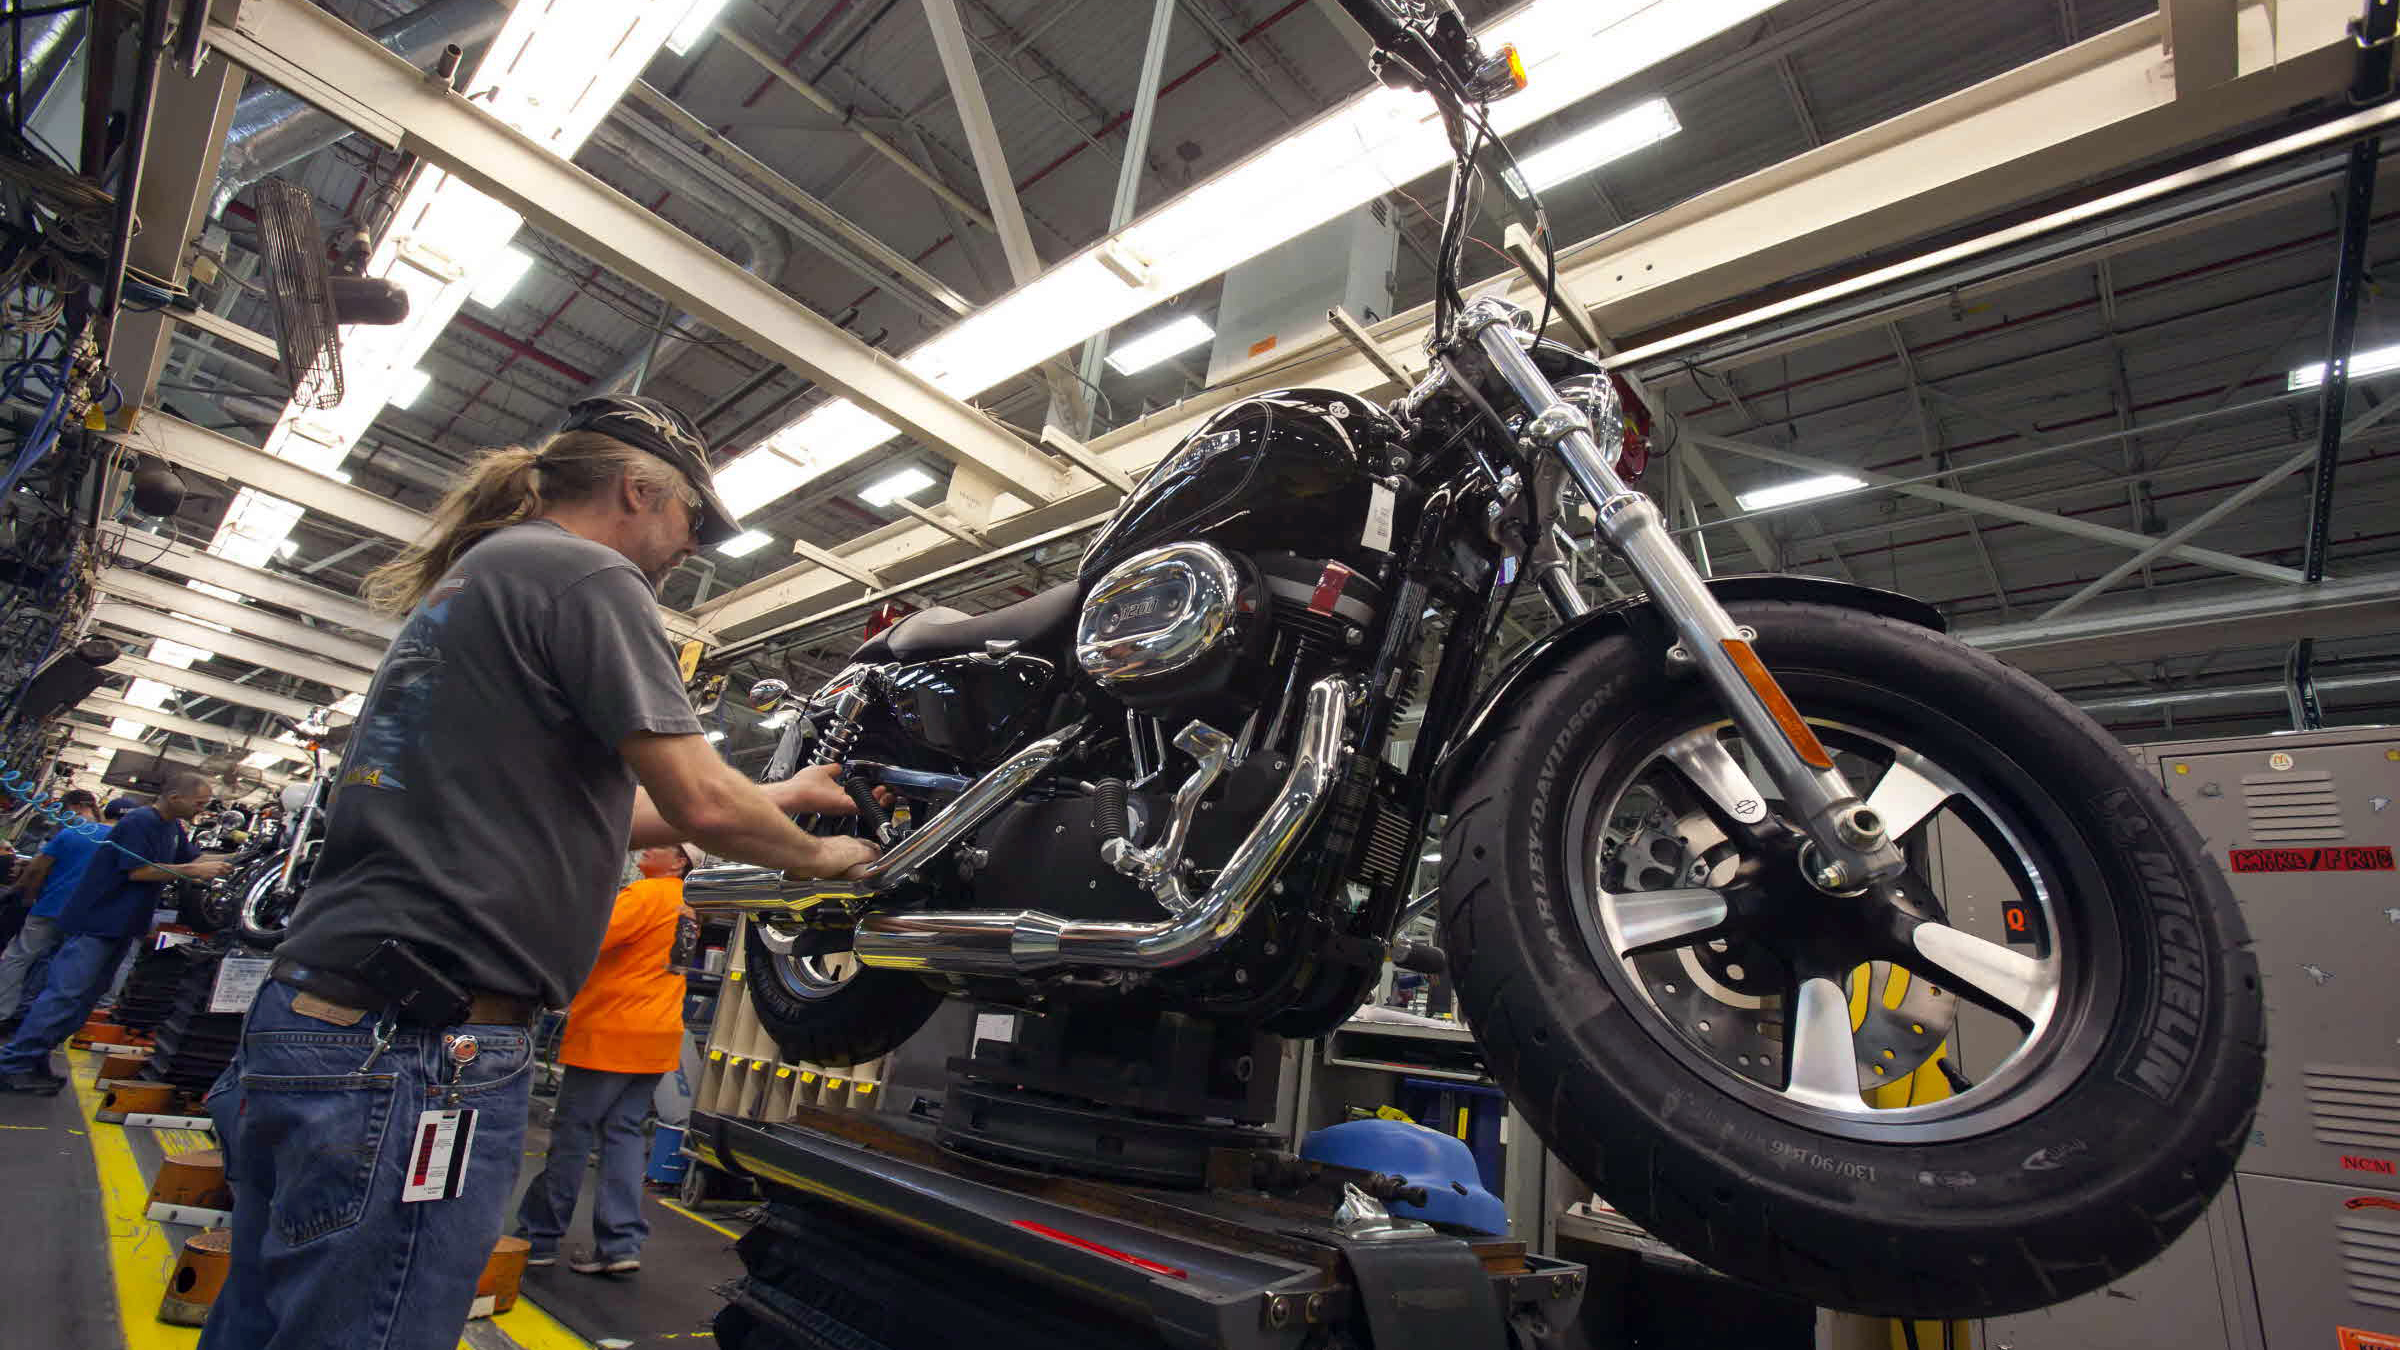 Harley Davidson Plans To Build A Manufacturing Plant In